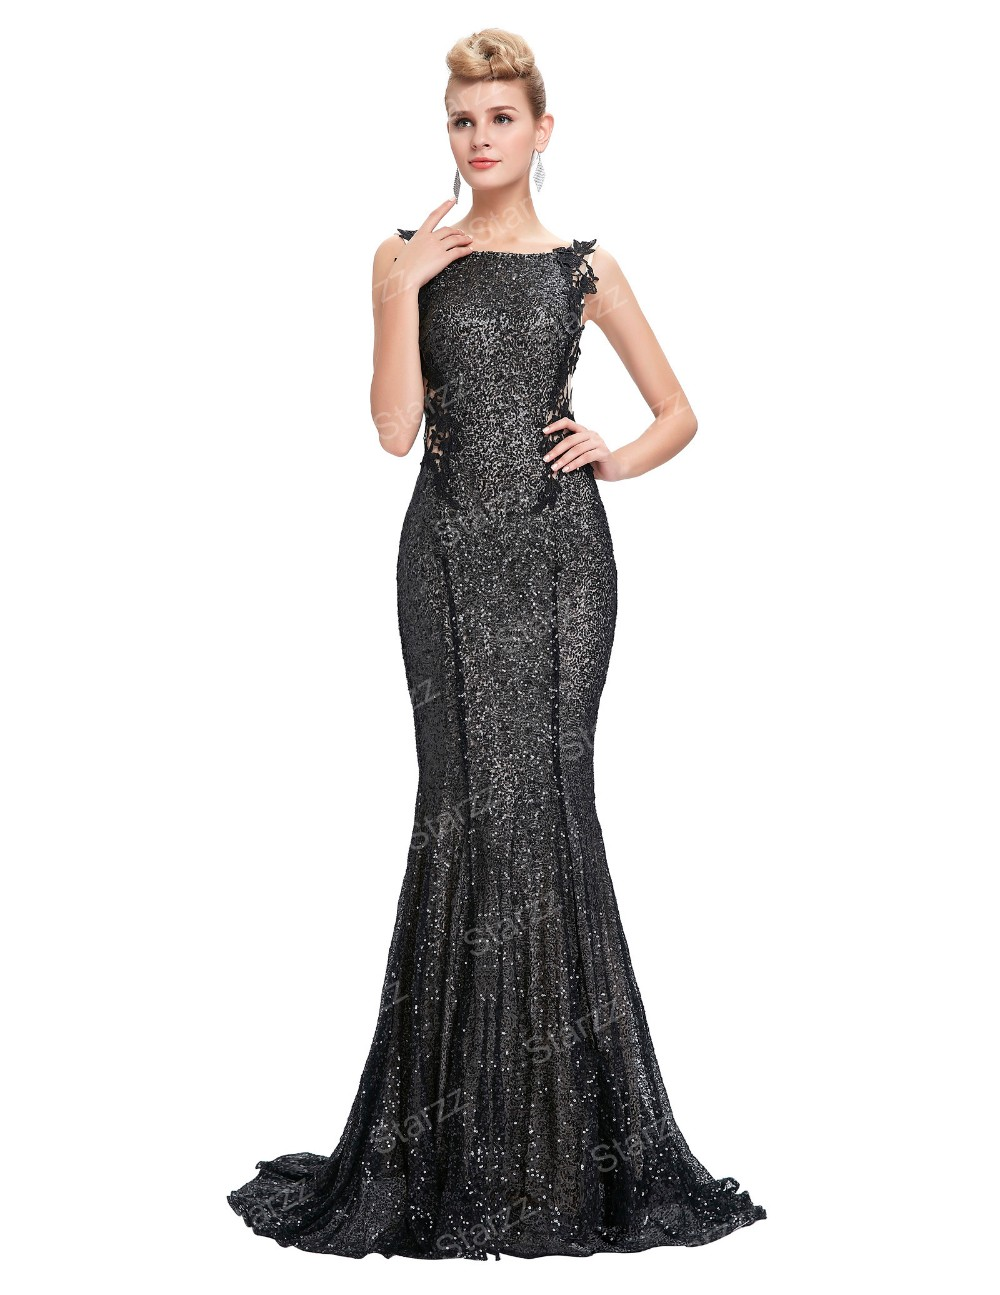 Starzz 2016 Sleeveless Black Shining Sequins Backless Ball Gown ...